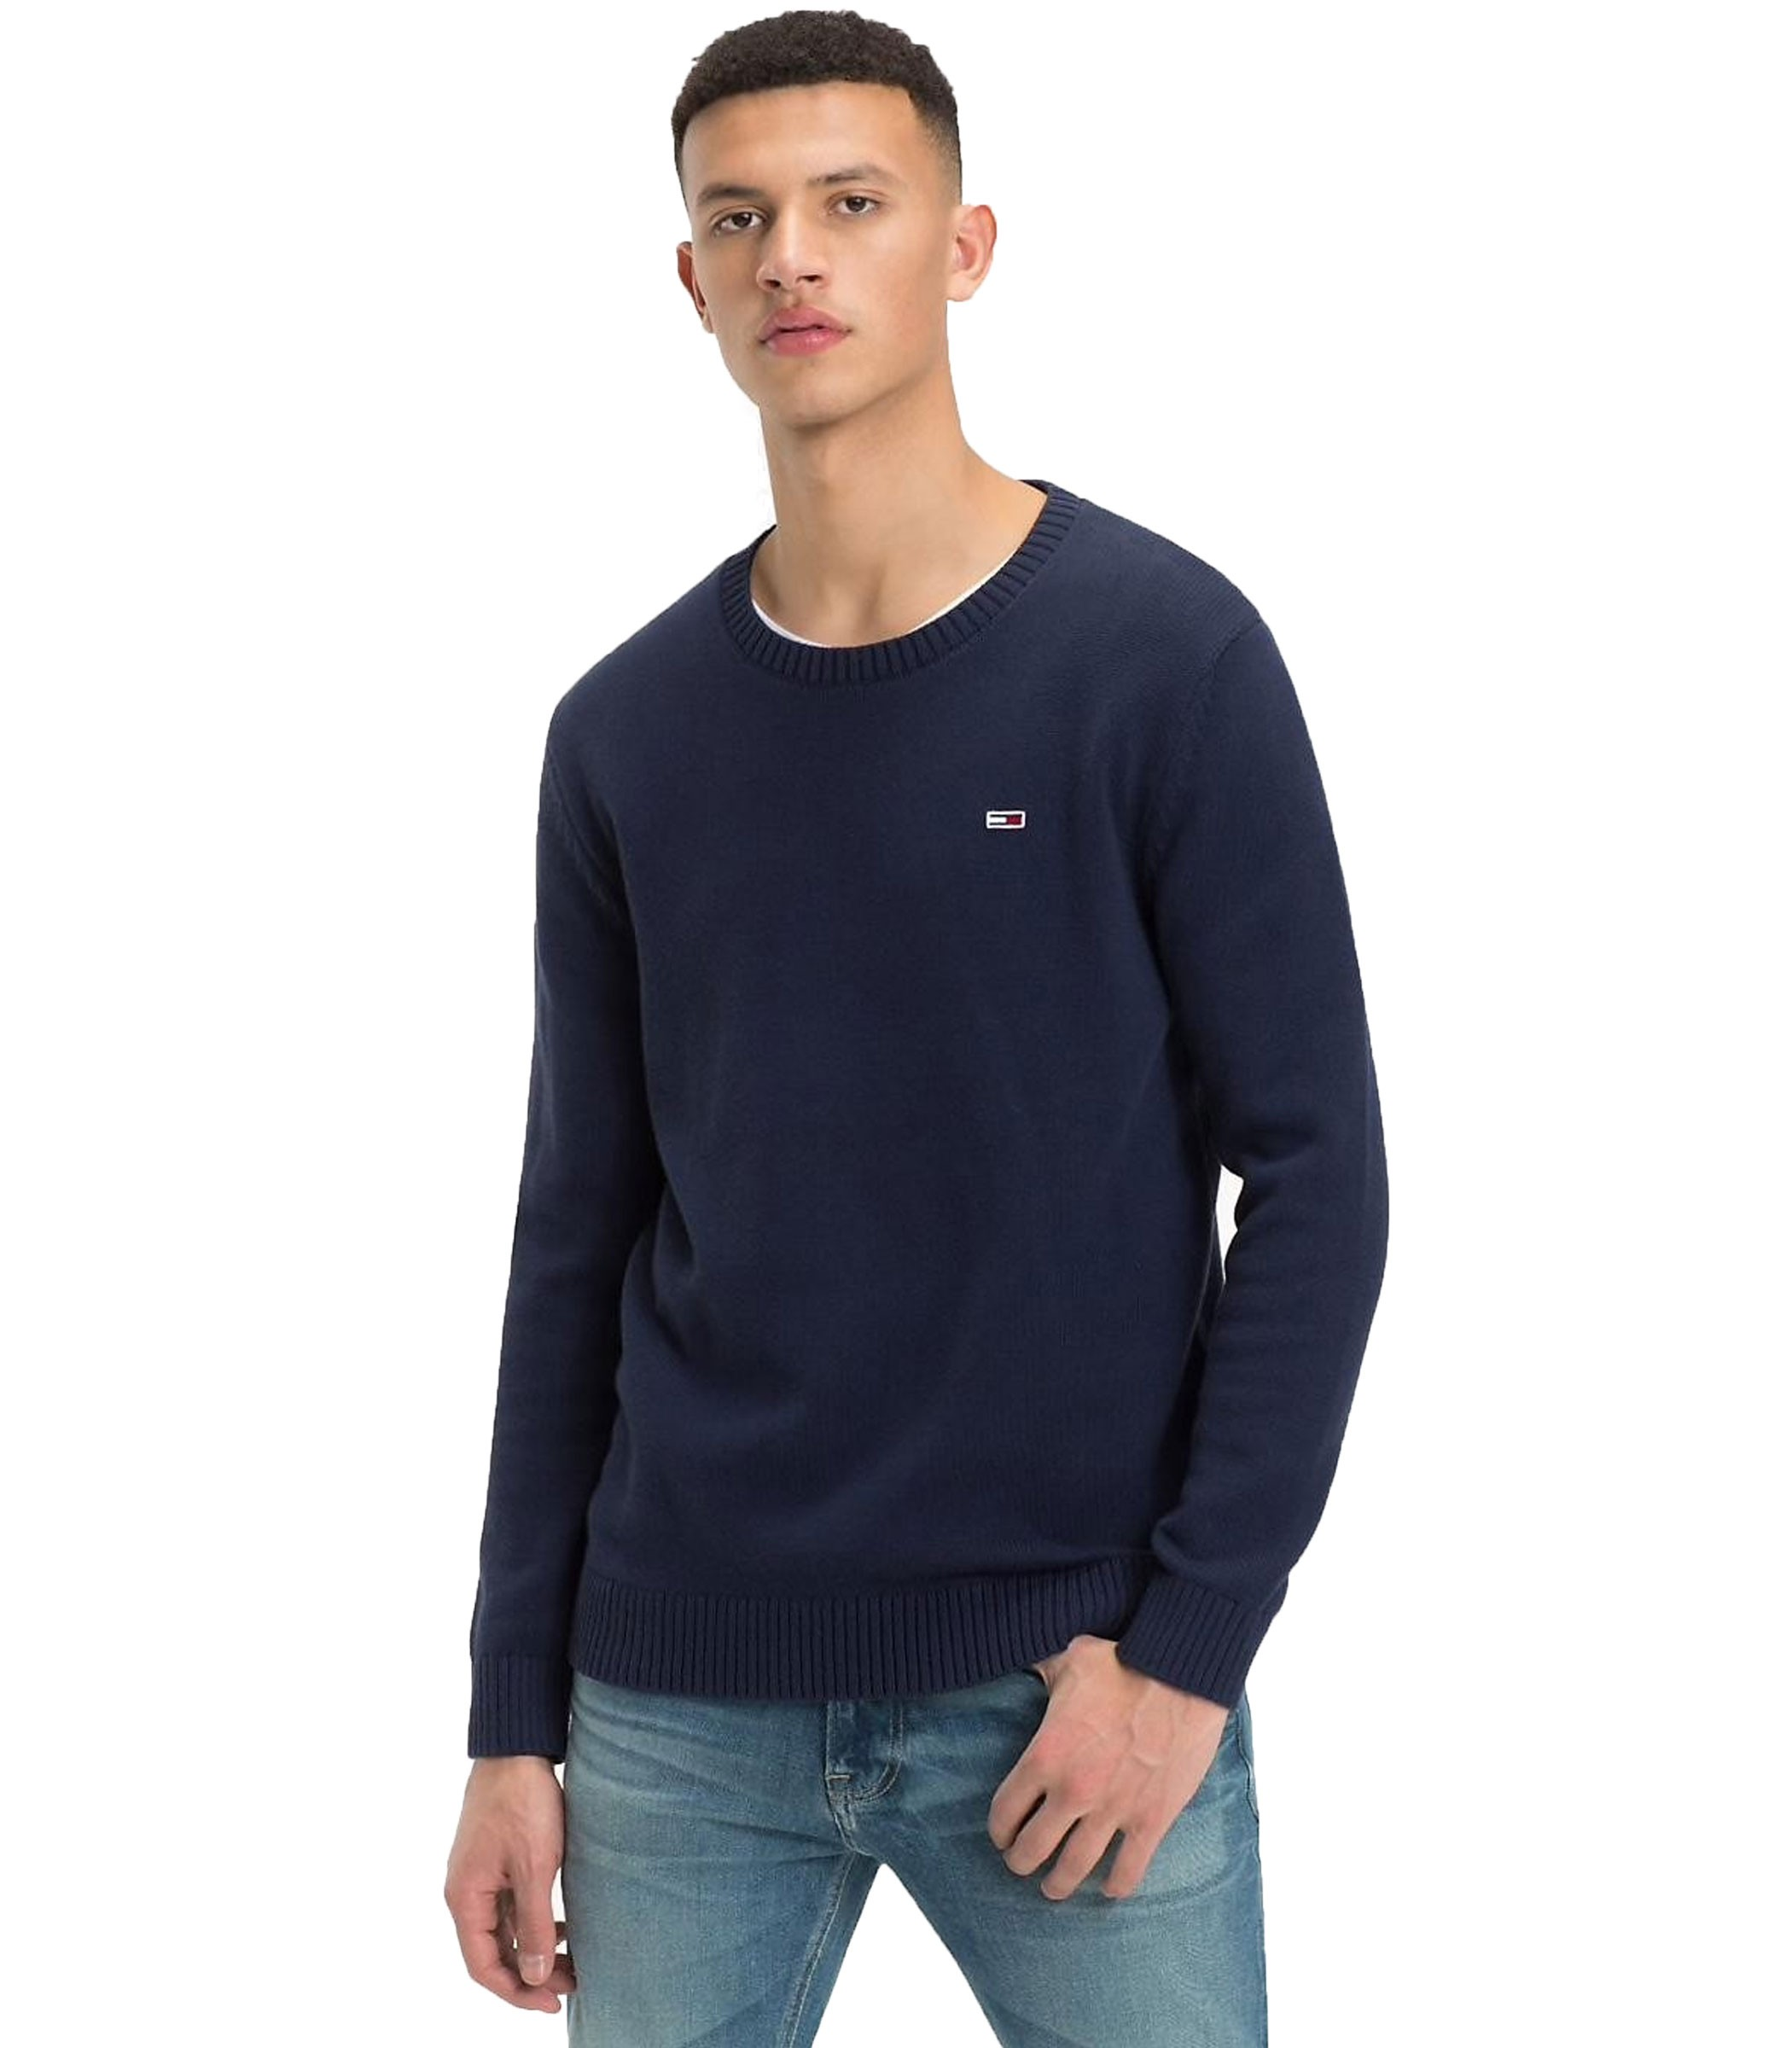 huge selection of eebb3 6ded8 Pullover Tommy Hilfiger Jeans Classics maglia da uomo rif ...